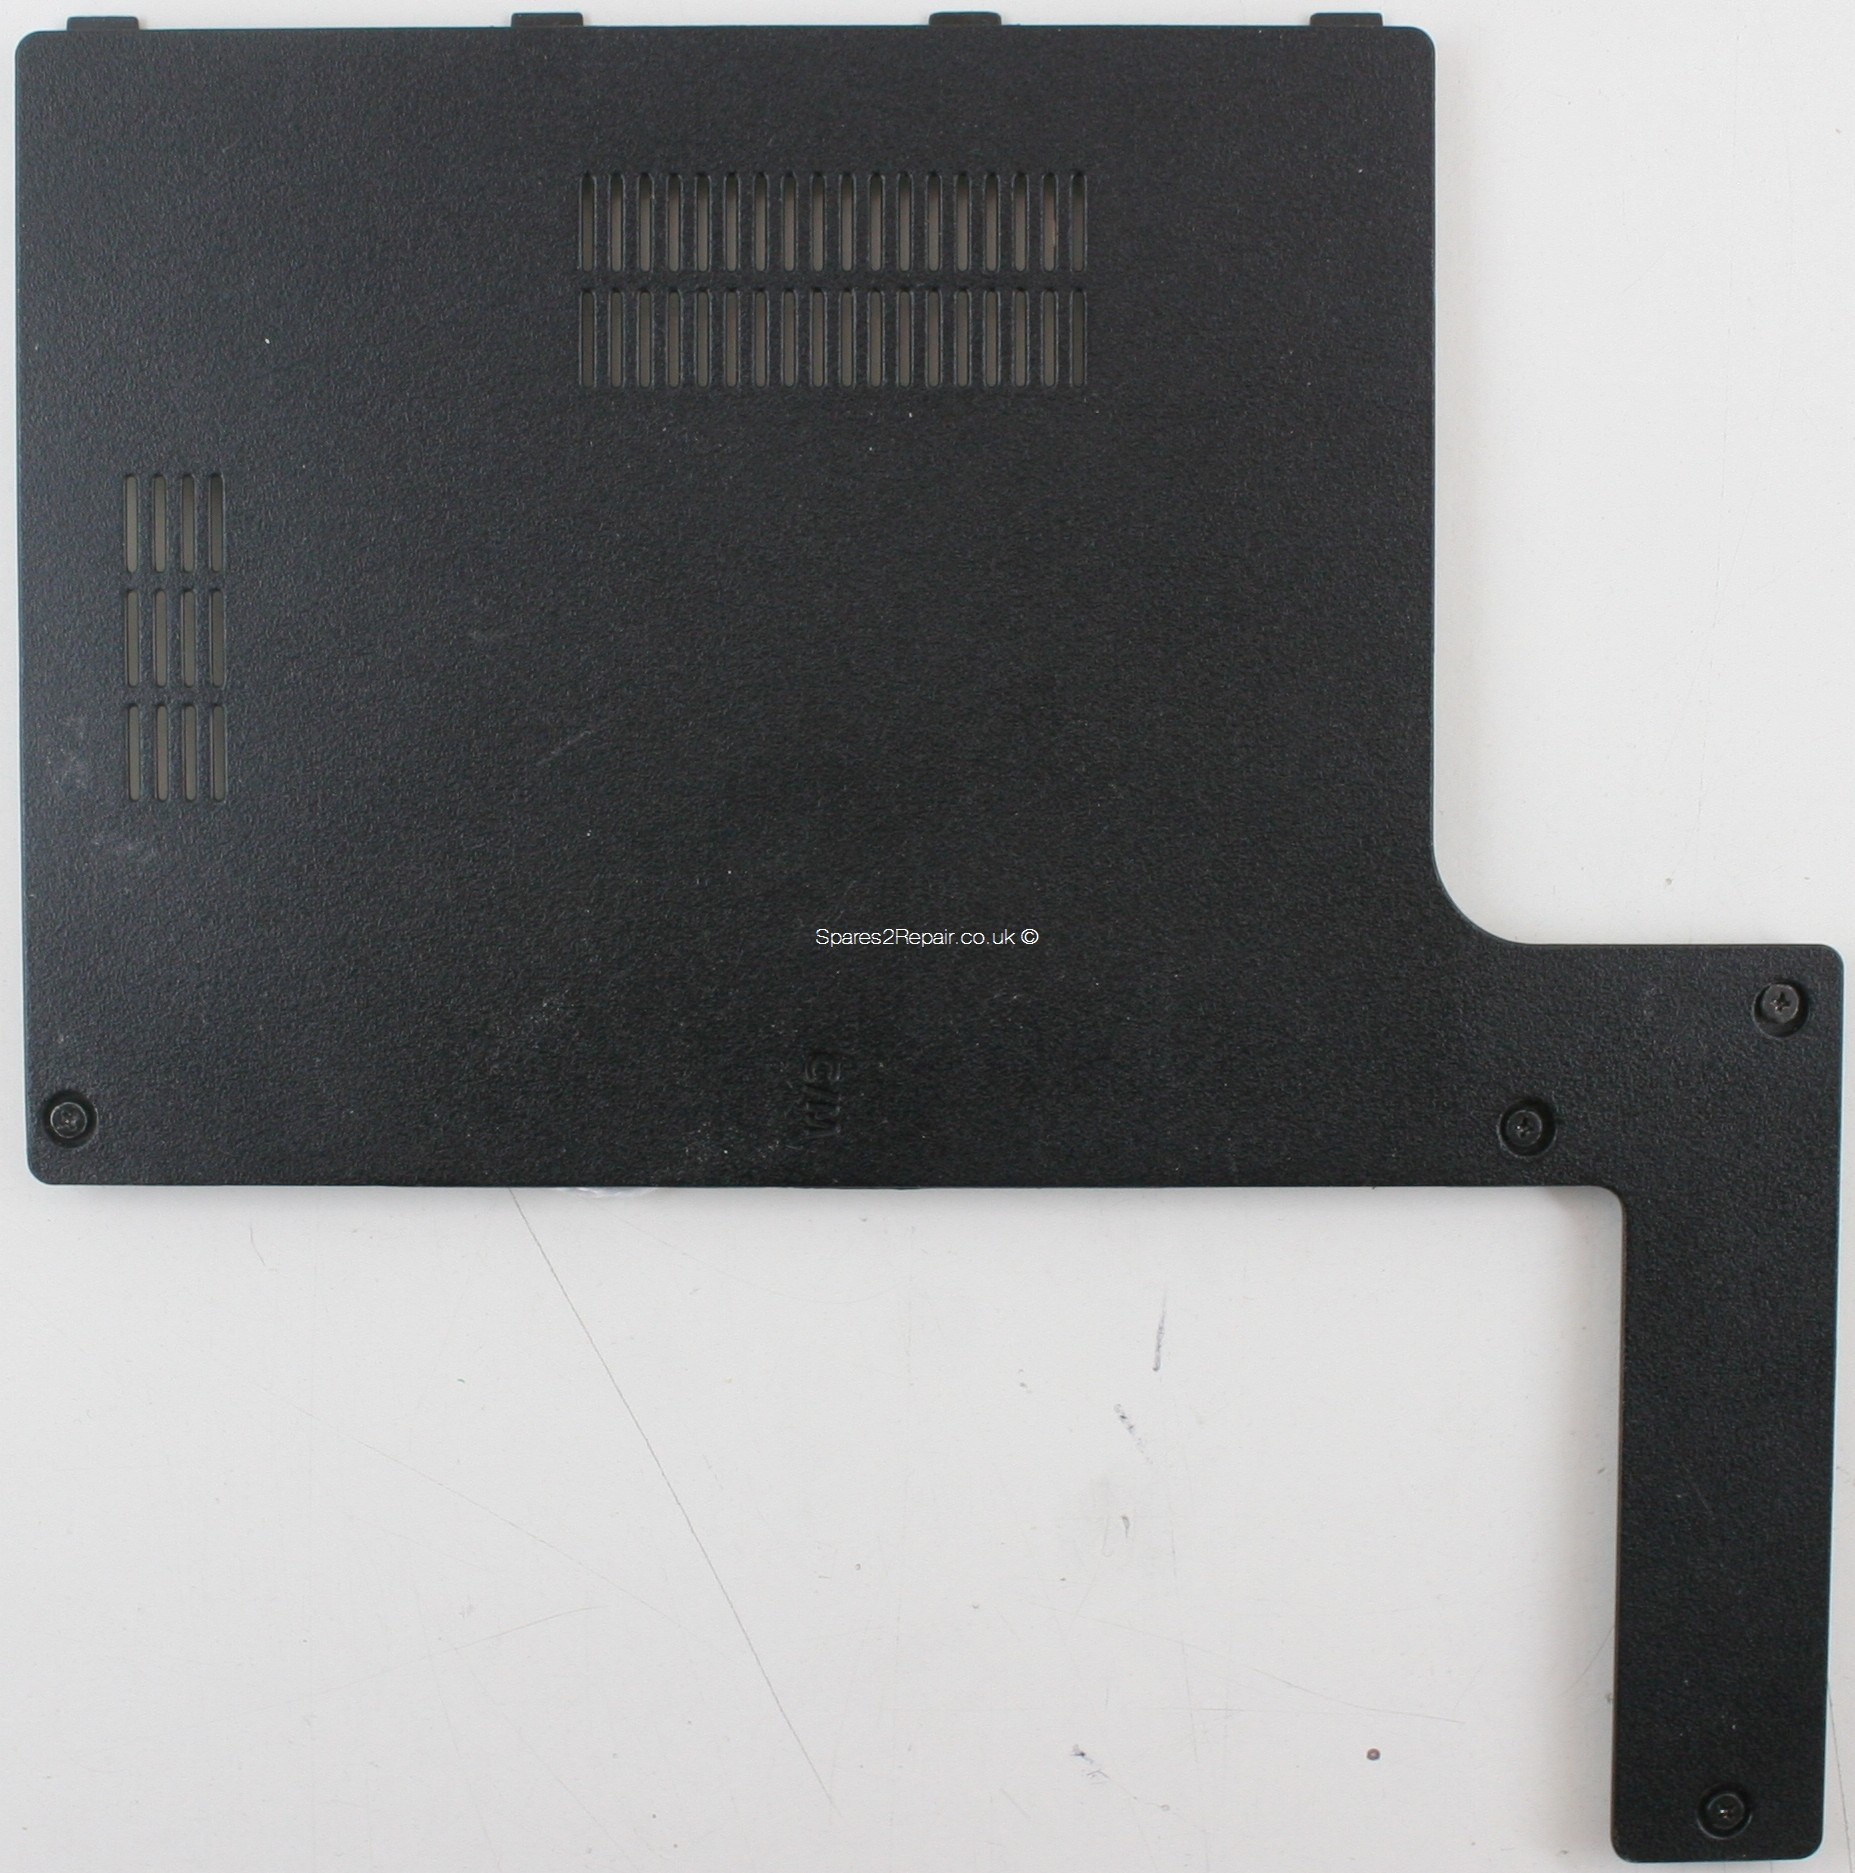 Dell Inspiron 1545 - Base Cover - 60.4AQ14.004 - REV:A04